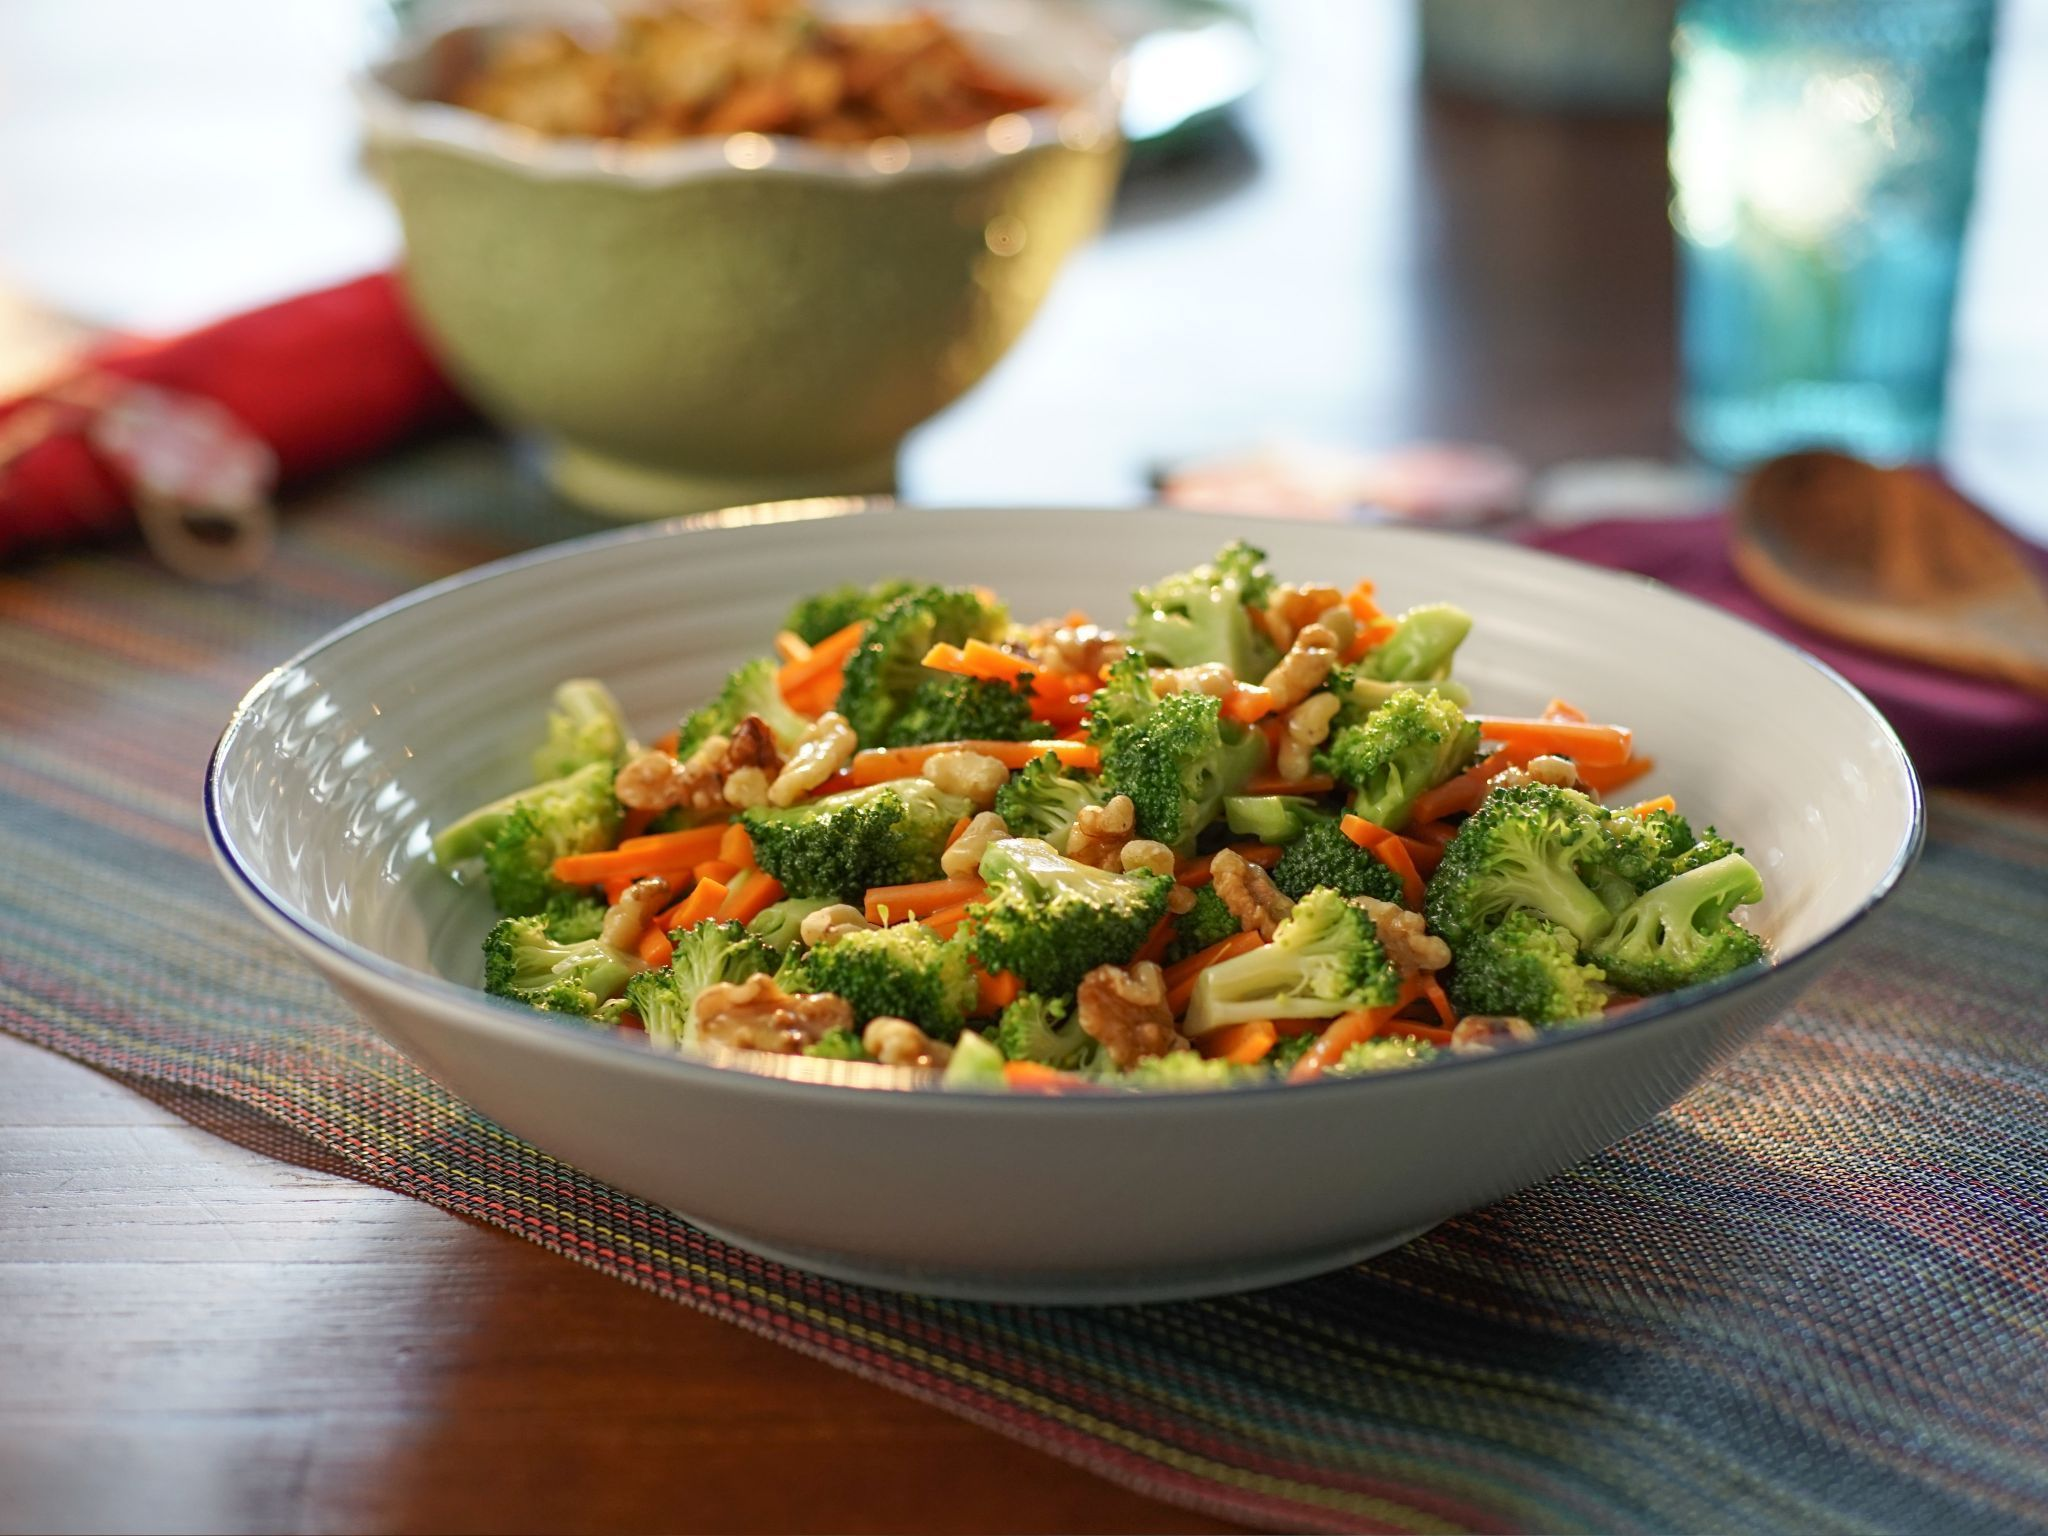 Image result for carrots and broccoli salad